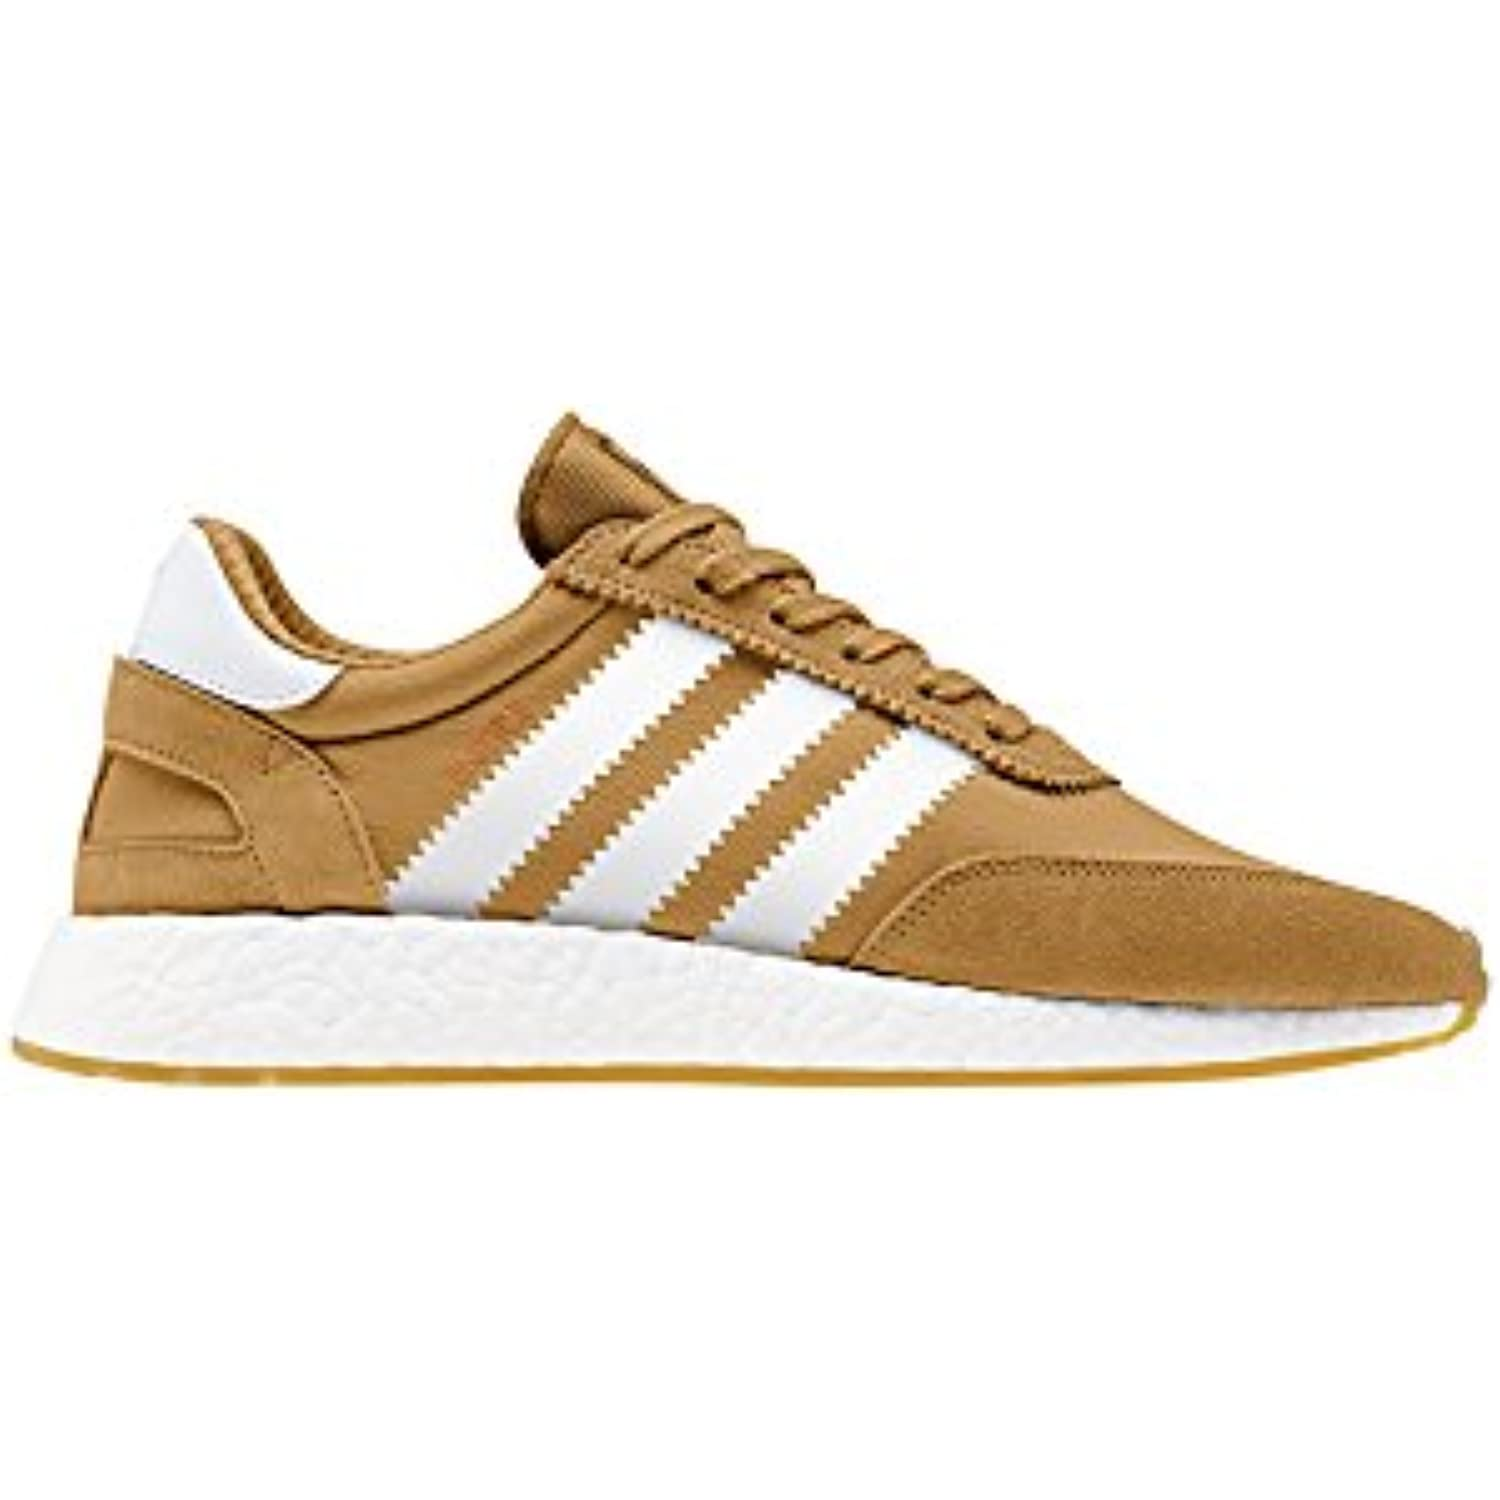 new concept 13b57 4f084 Adidas Iniki Runner, Chaussures Chaussures Chaussures de Fitness Homme  B07BV5RBP9 - 8f28ce